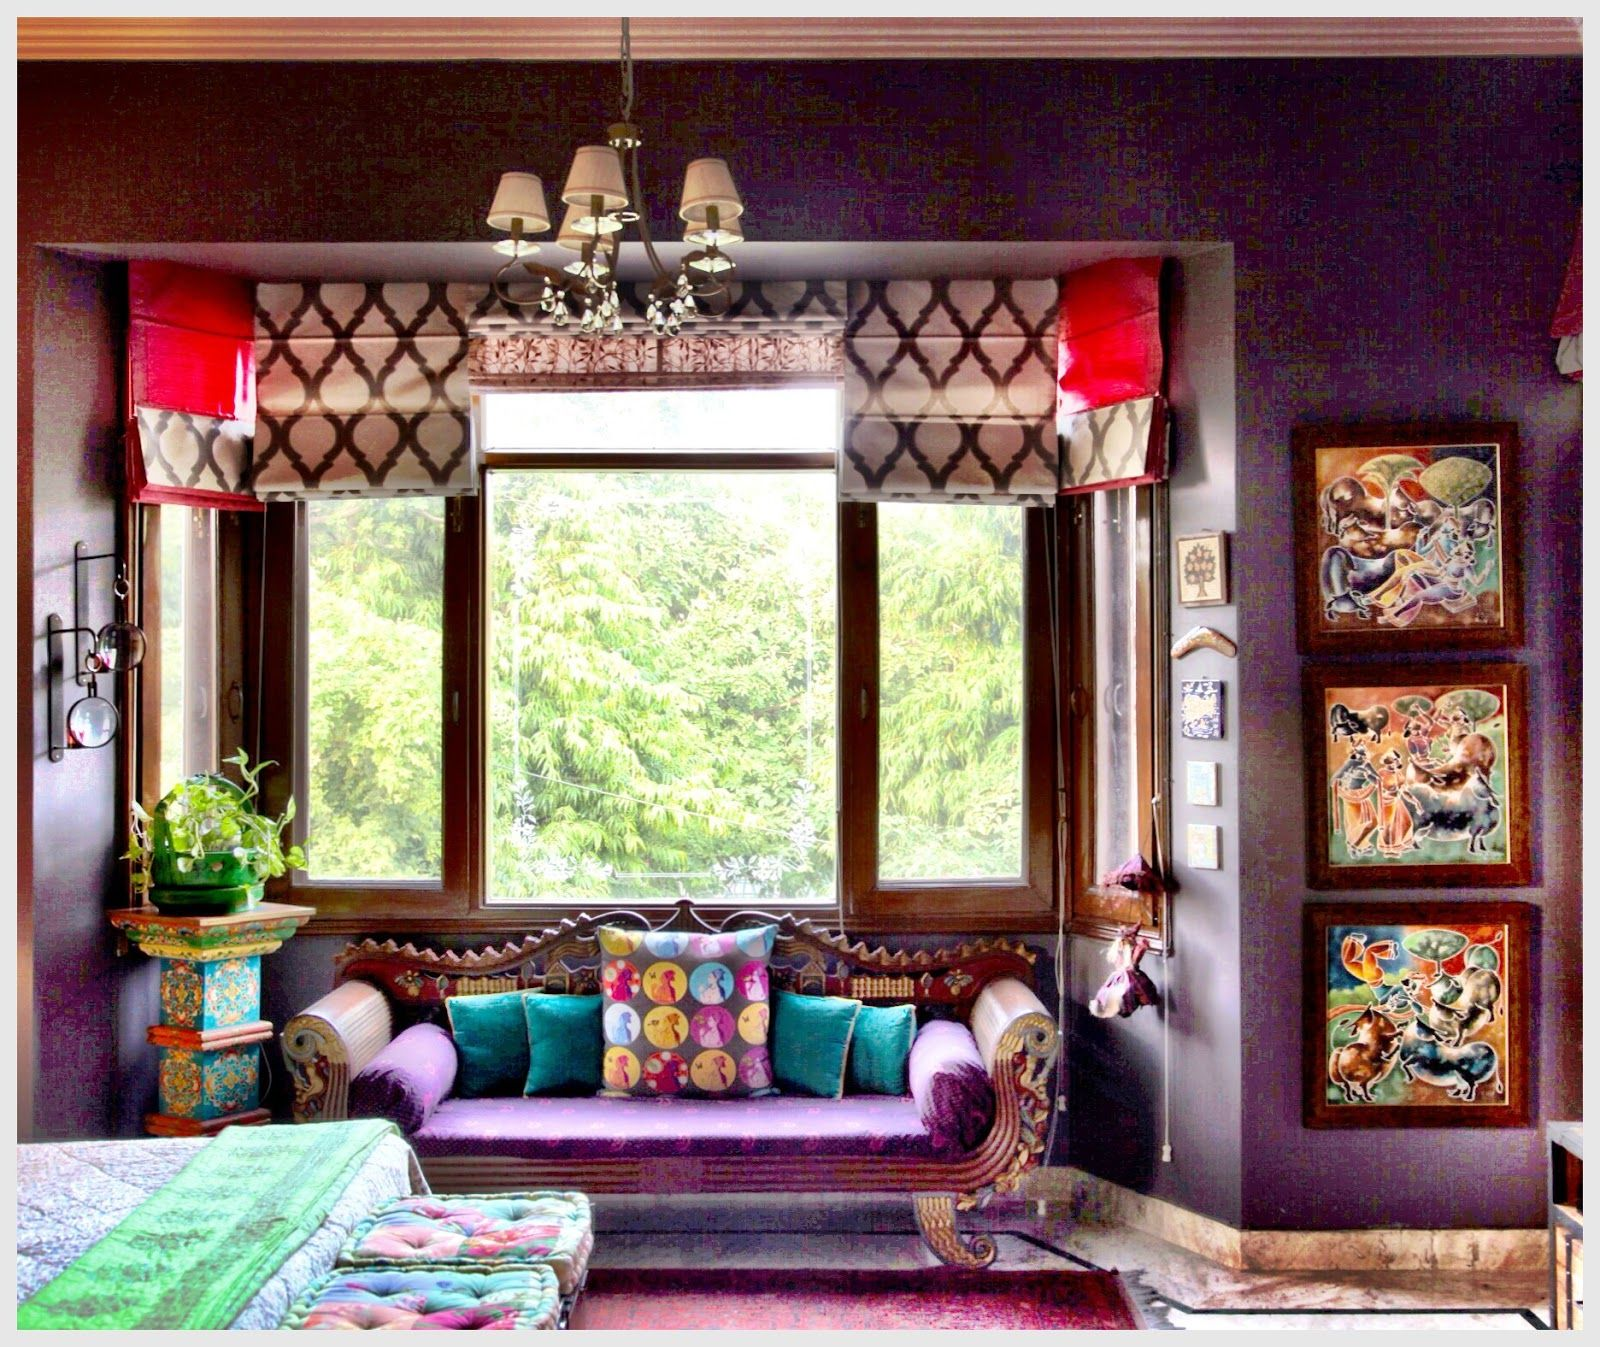 arradhana anand's colorfully rich and texturally diverse bedroom